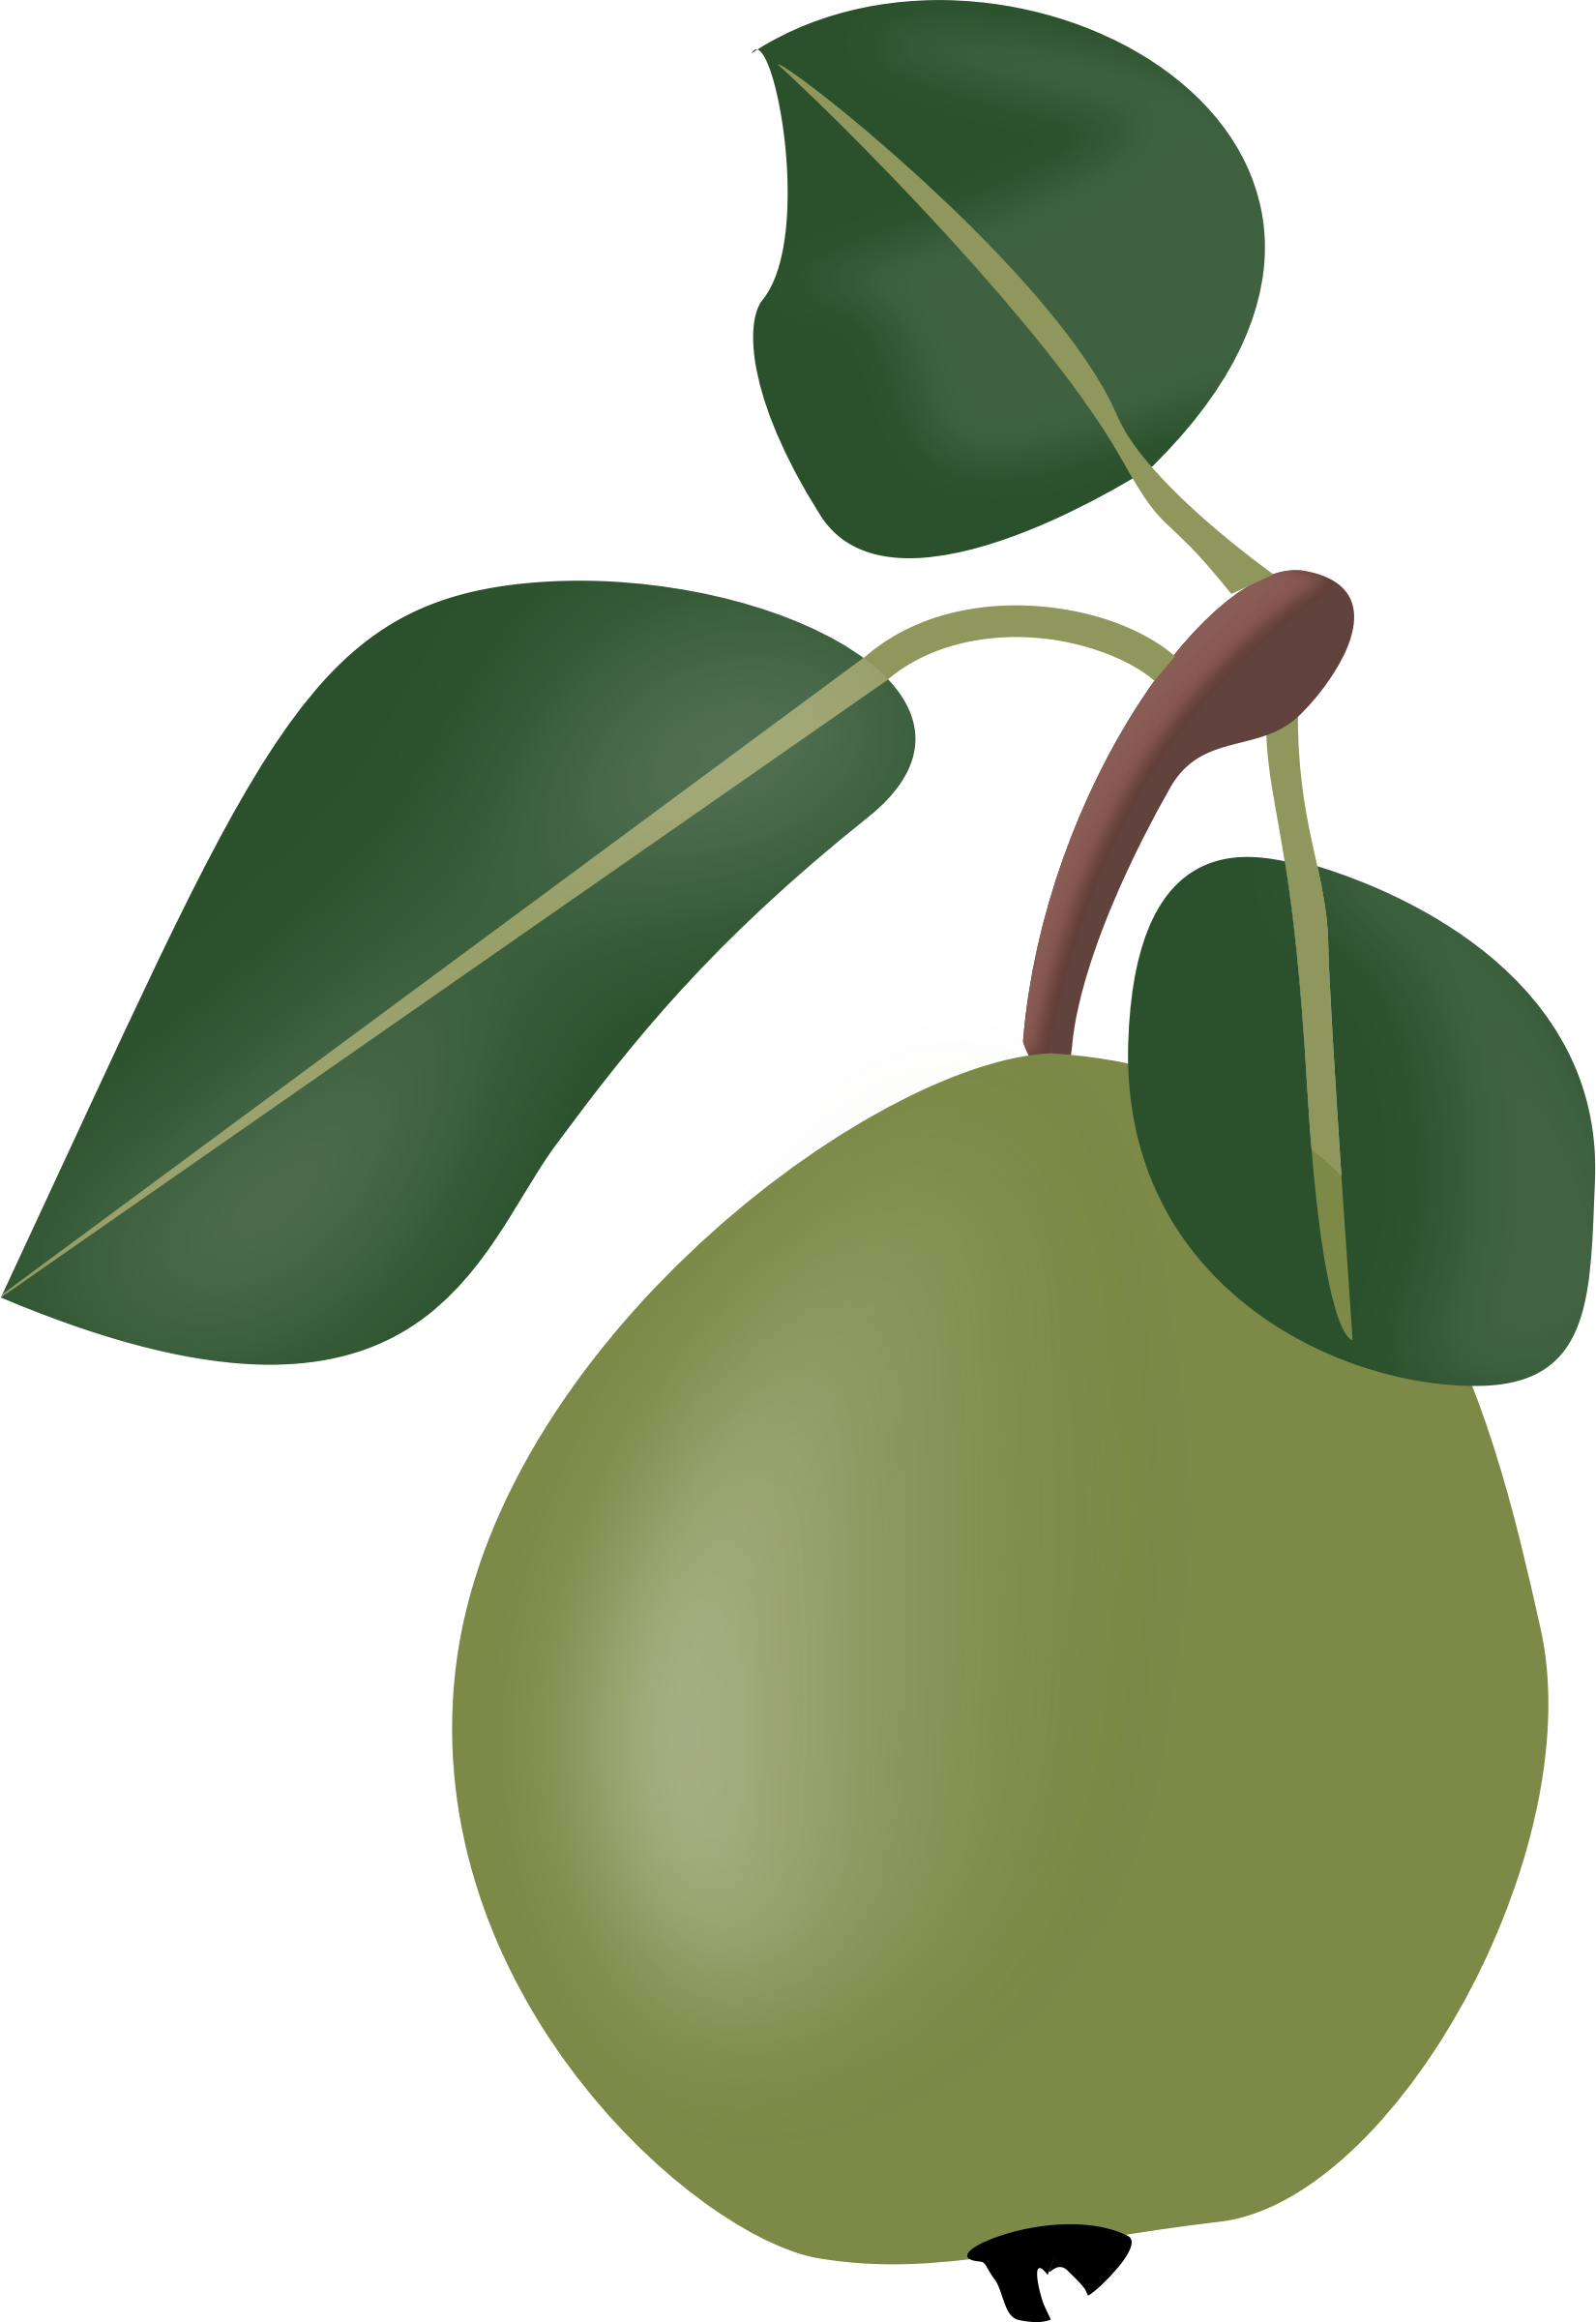 Stew pear with leafs by rdevries